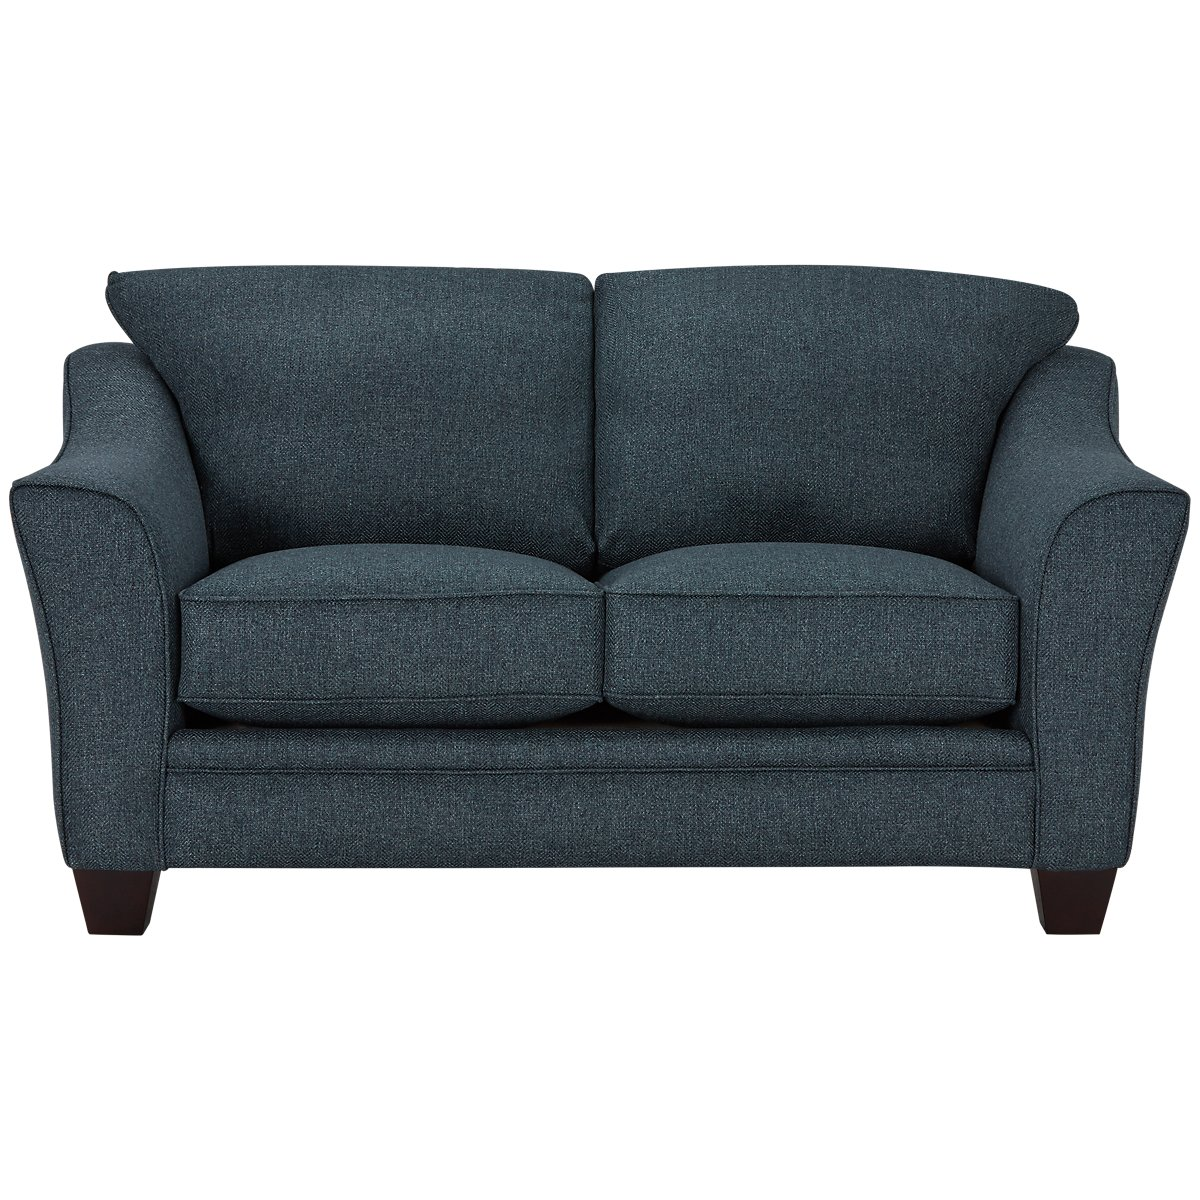 Avery Dark Blue Fabric Loveseat